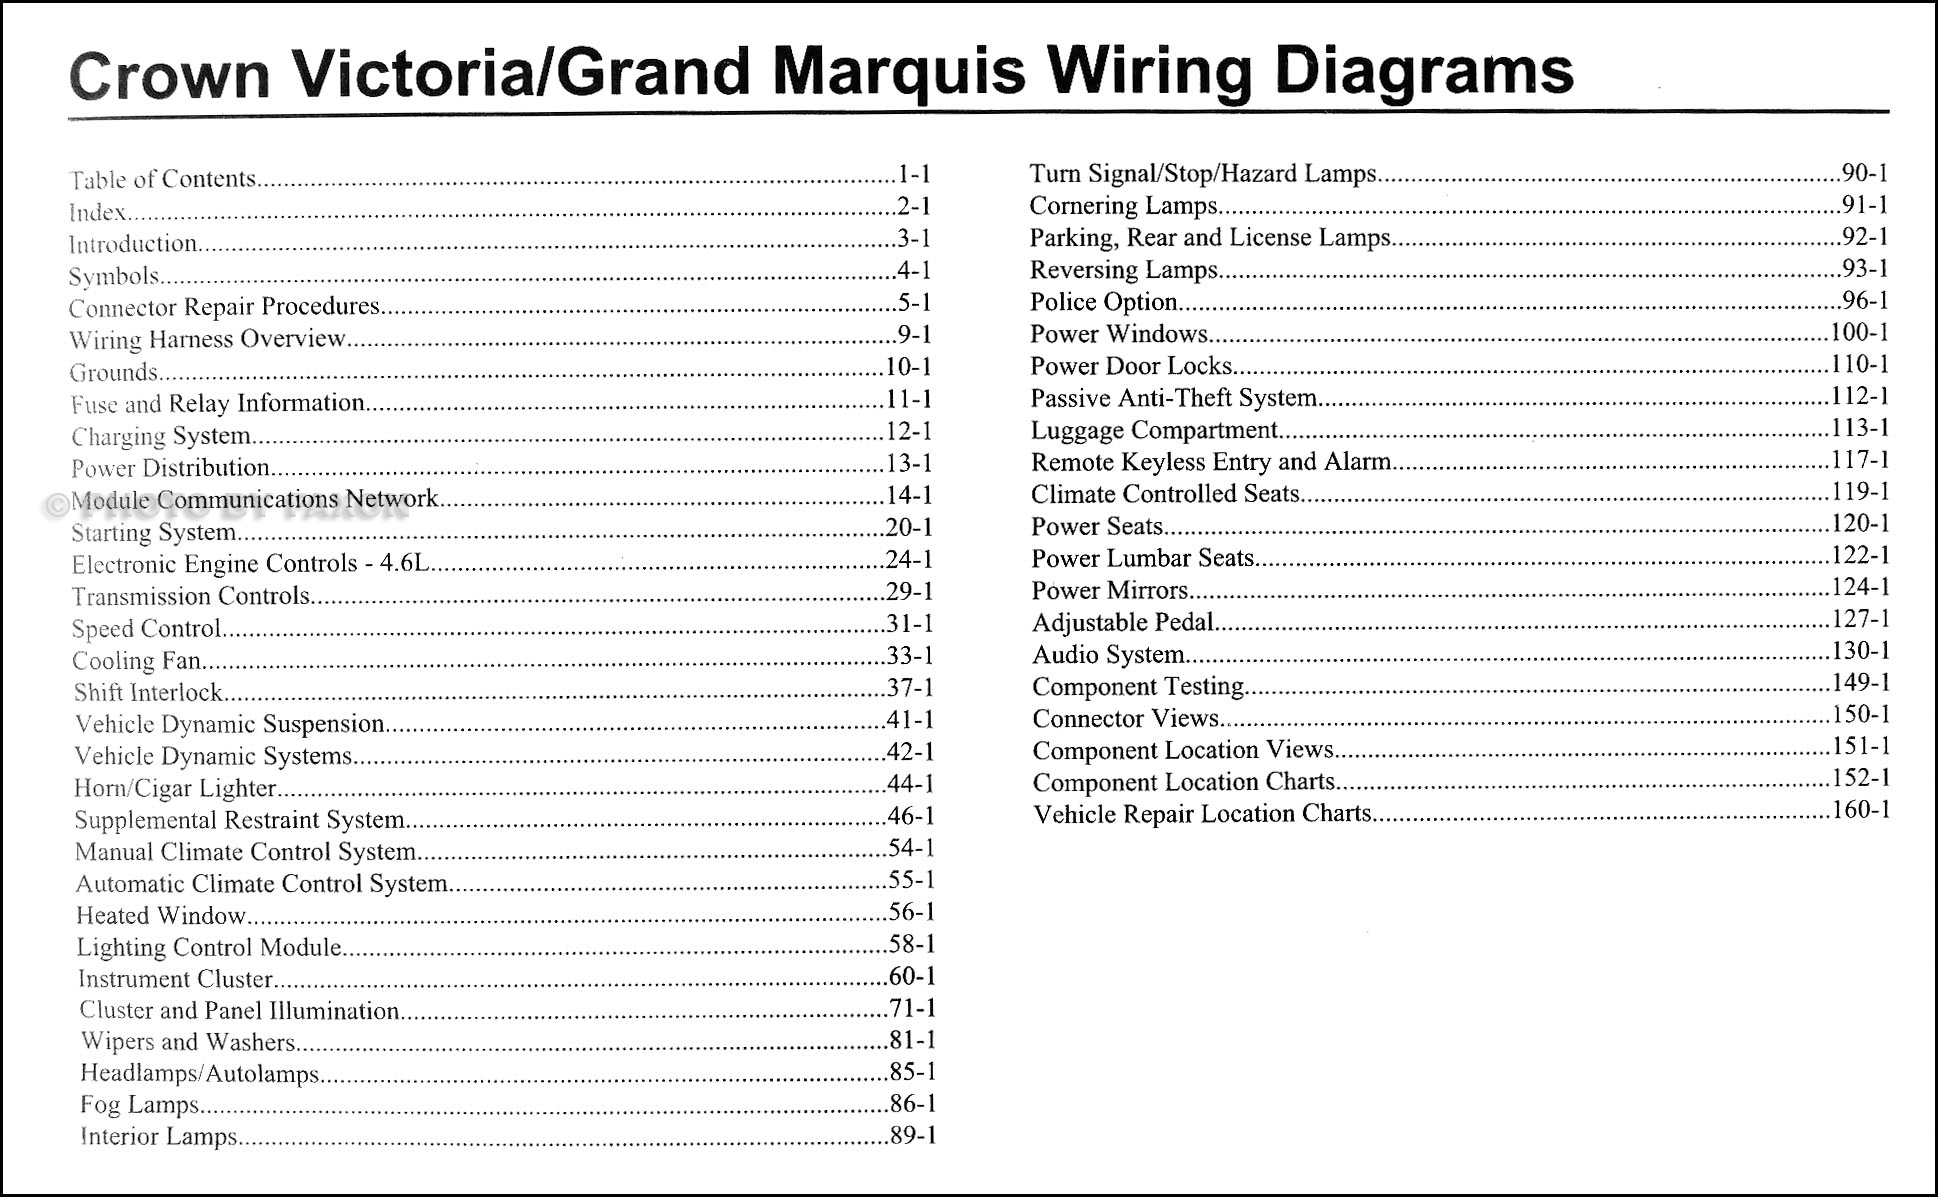 2009FordCrownVictoriaOWD TOC 2009 crown victoria & grand marquis original wiring diagram manual 1997 mercury grand marquis radio wiring harness at fashall.co